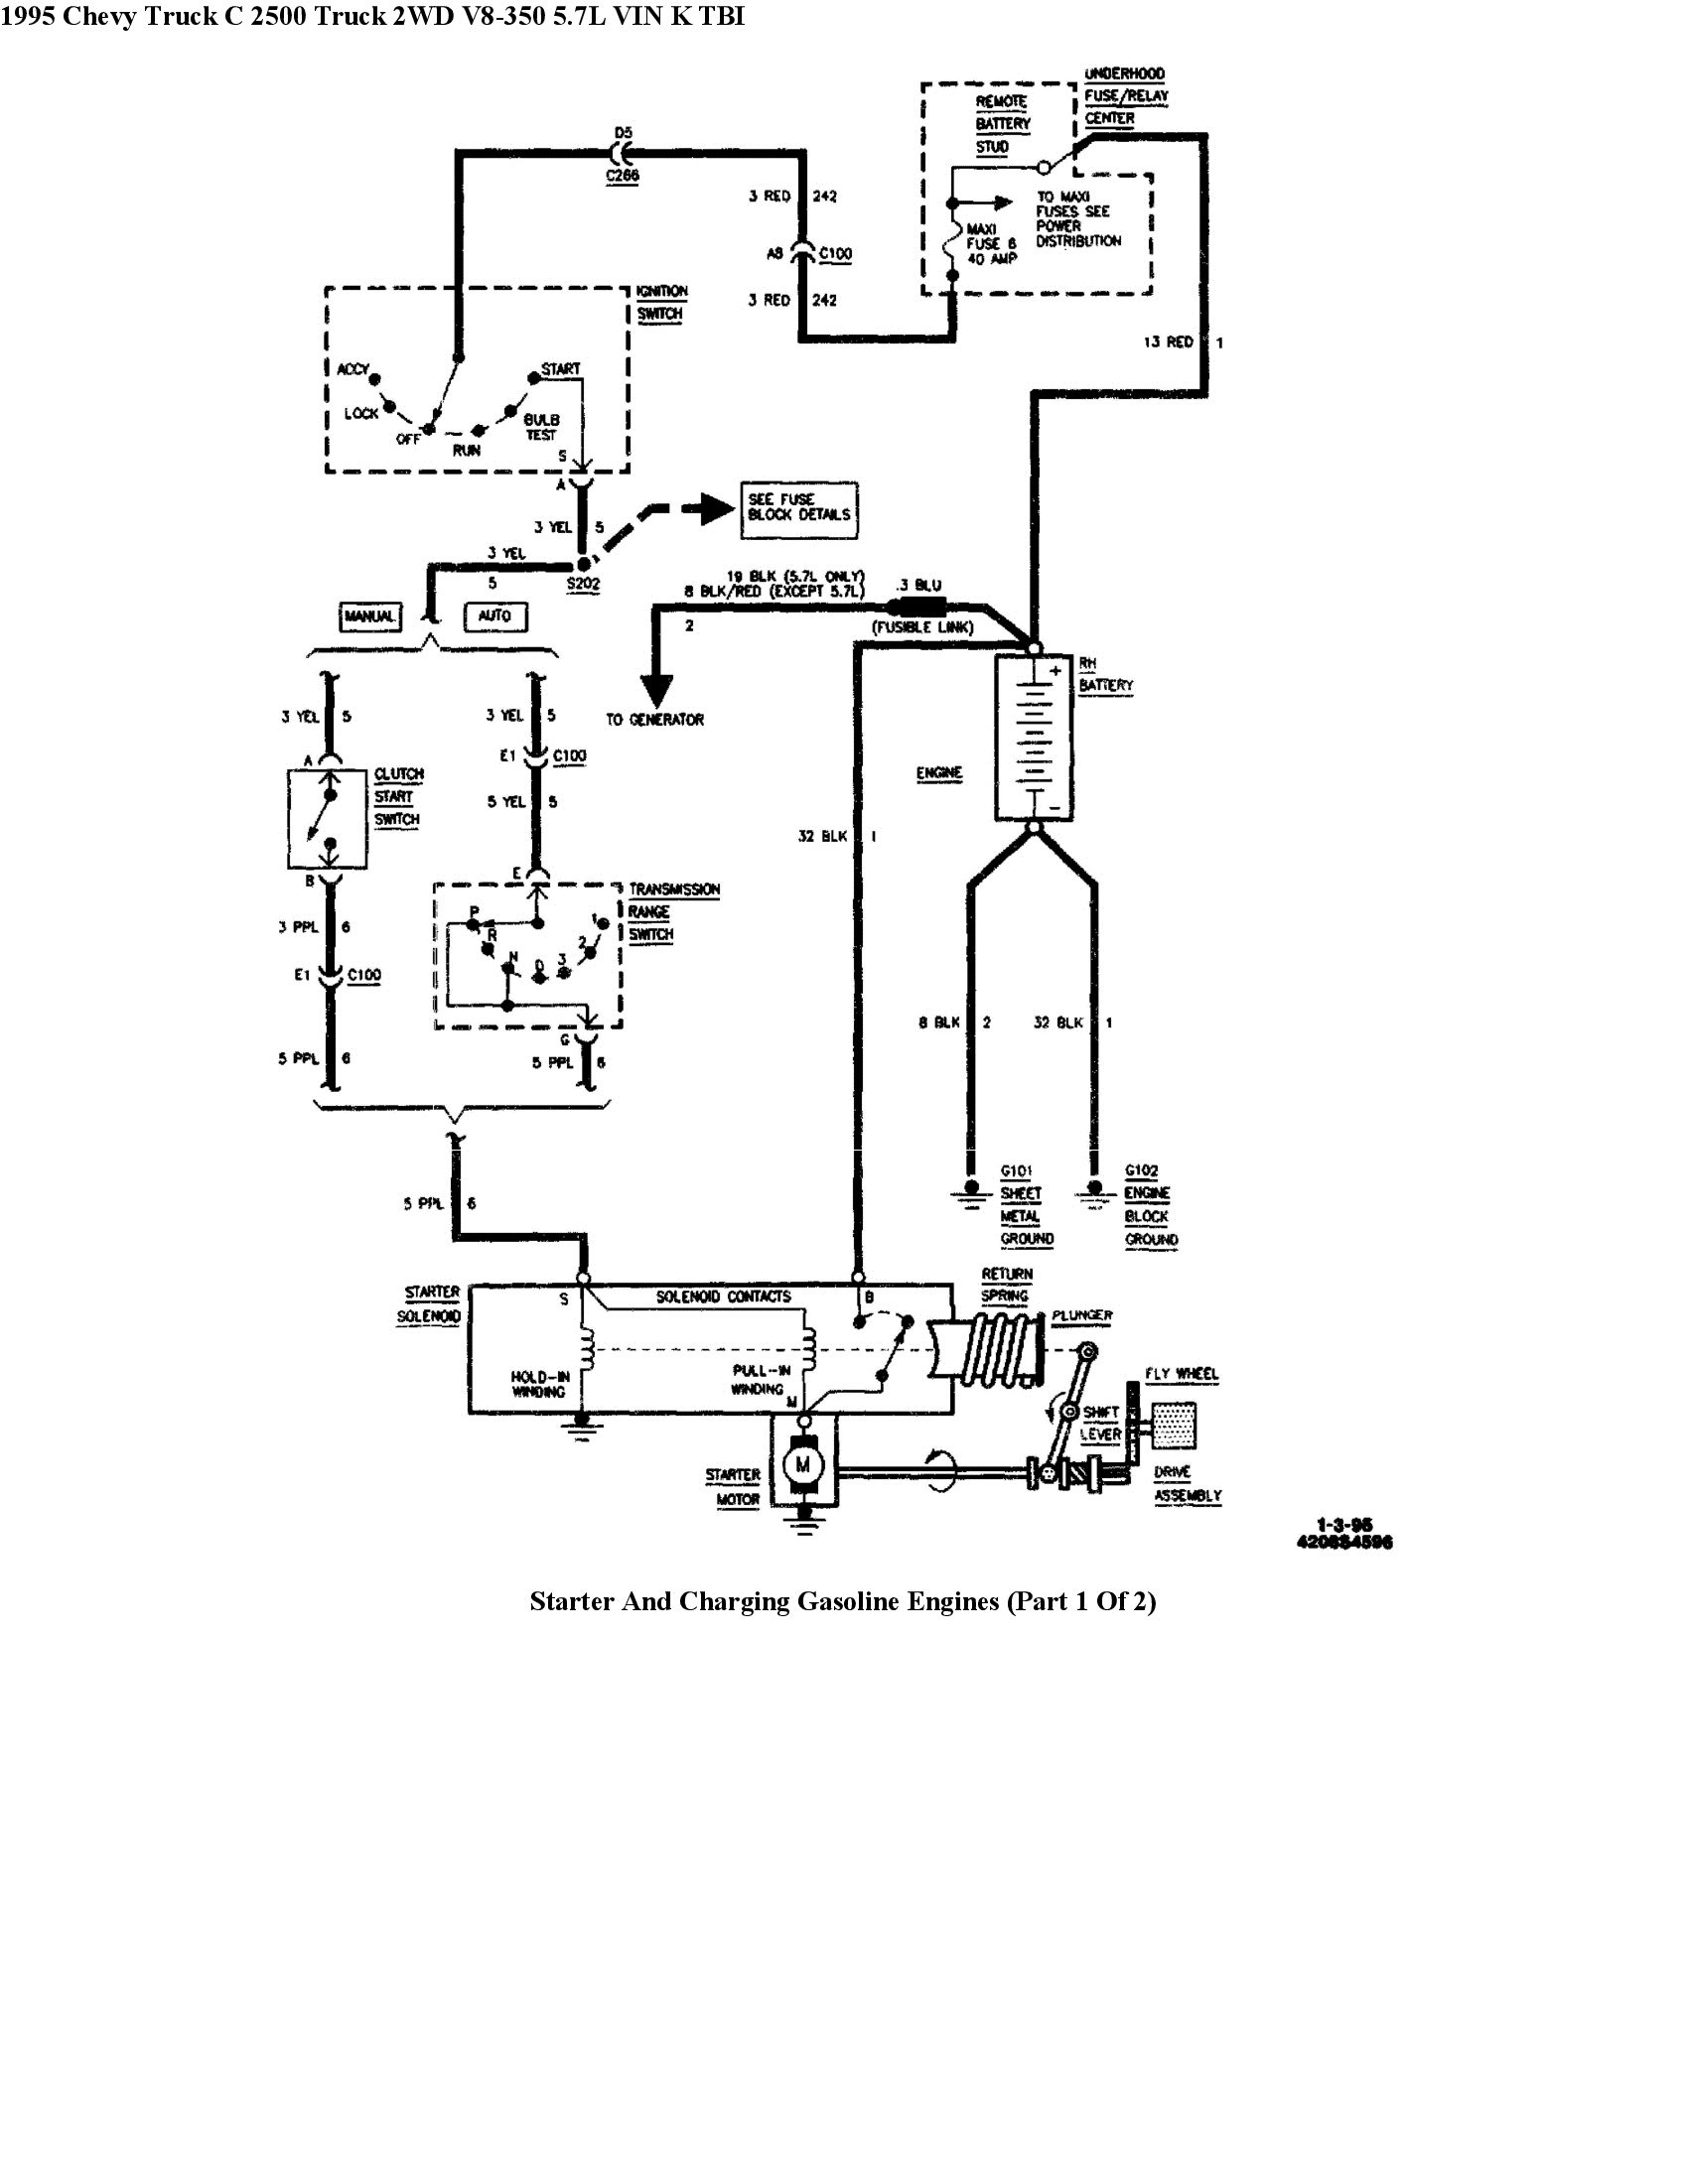 Wiring Diagram For A Brake Controller On A 20003 Chevy